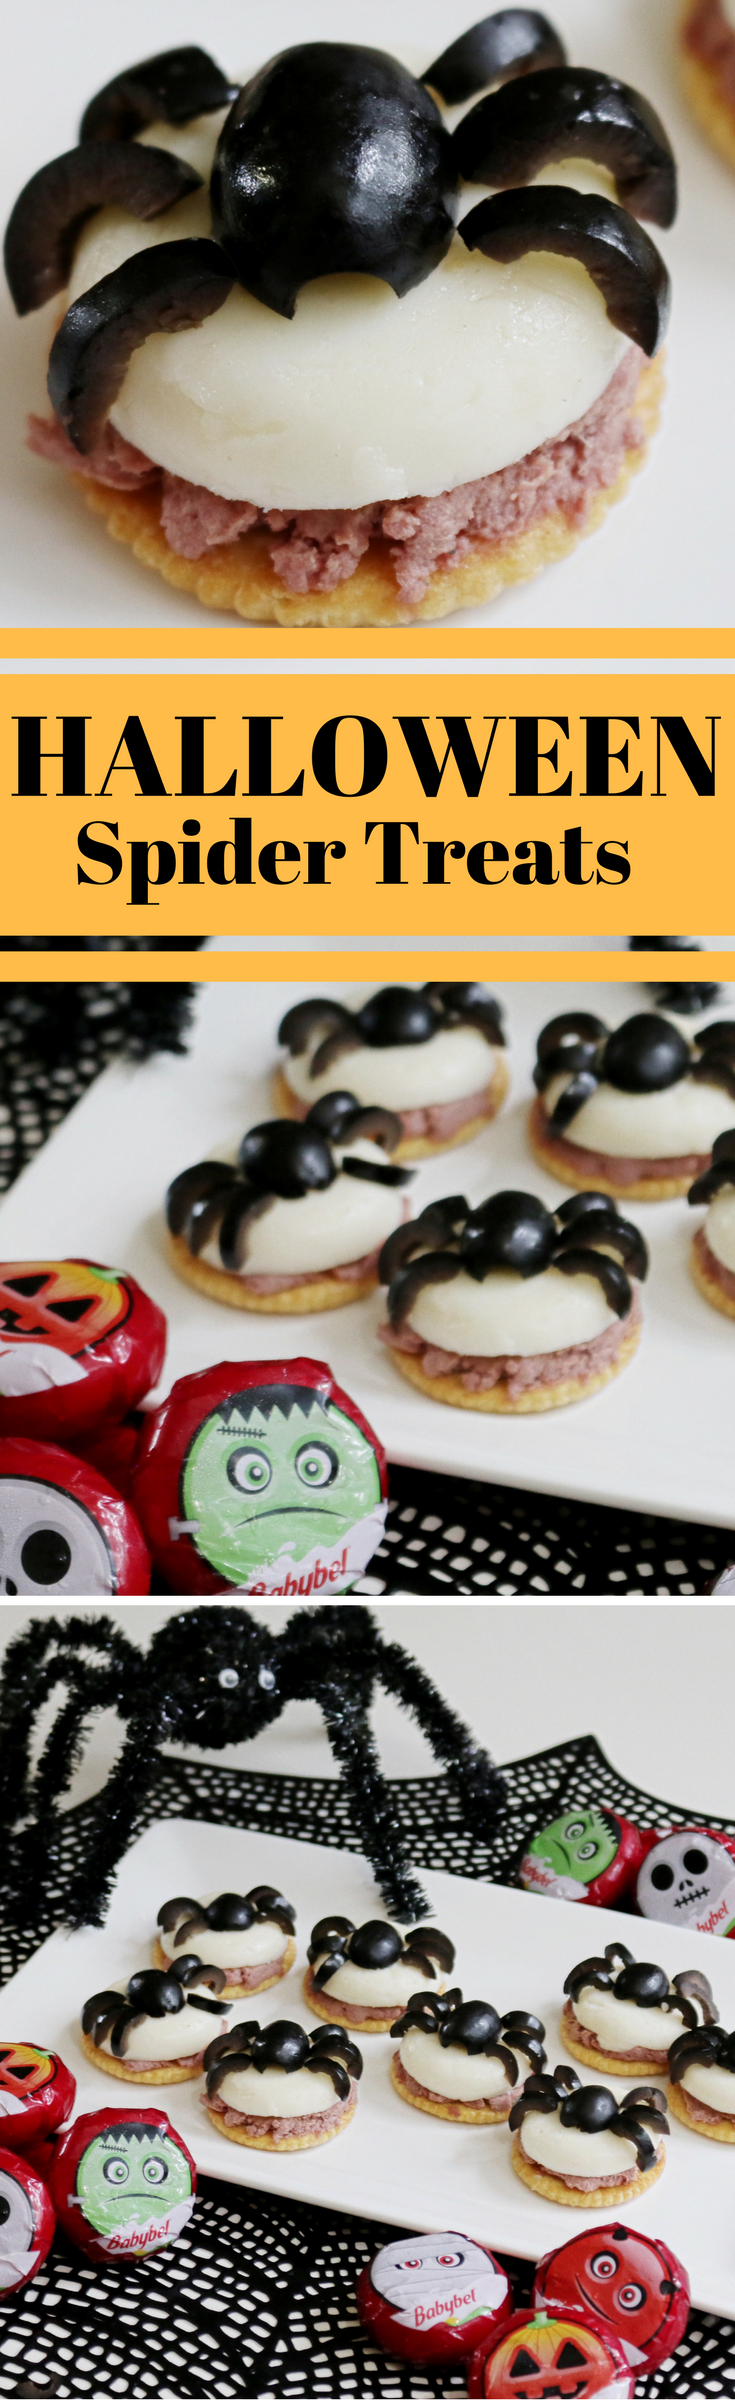 Halloweenpartyideasspidertreatsfood awesome pins pinterest